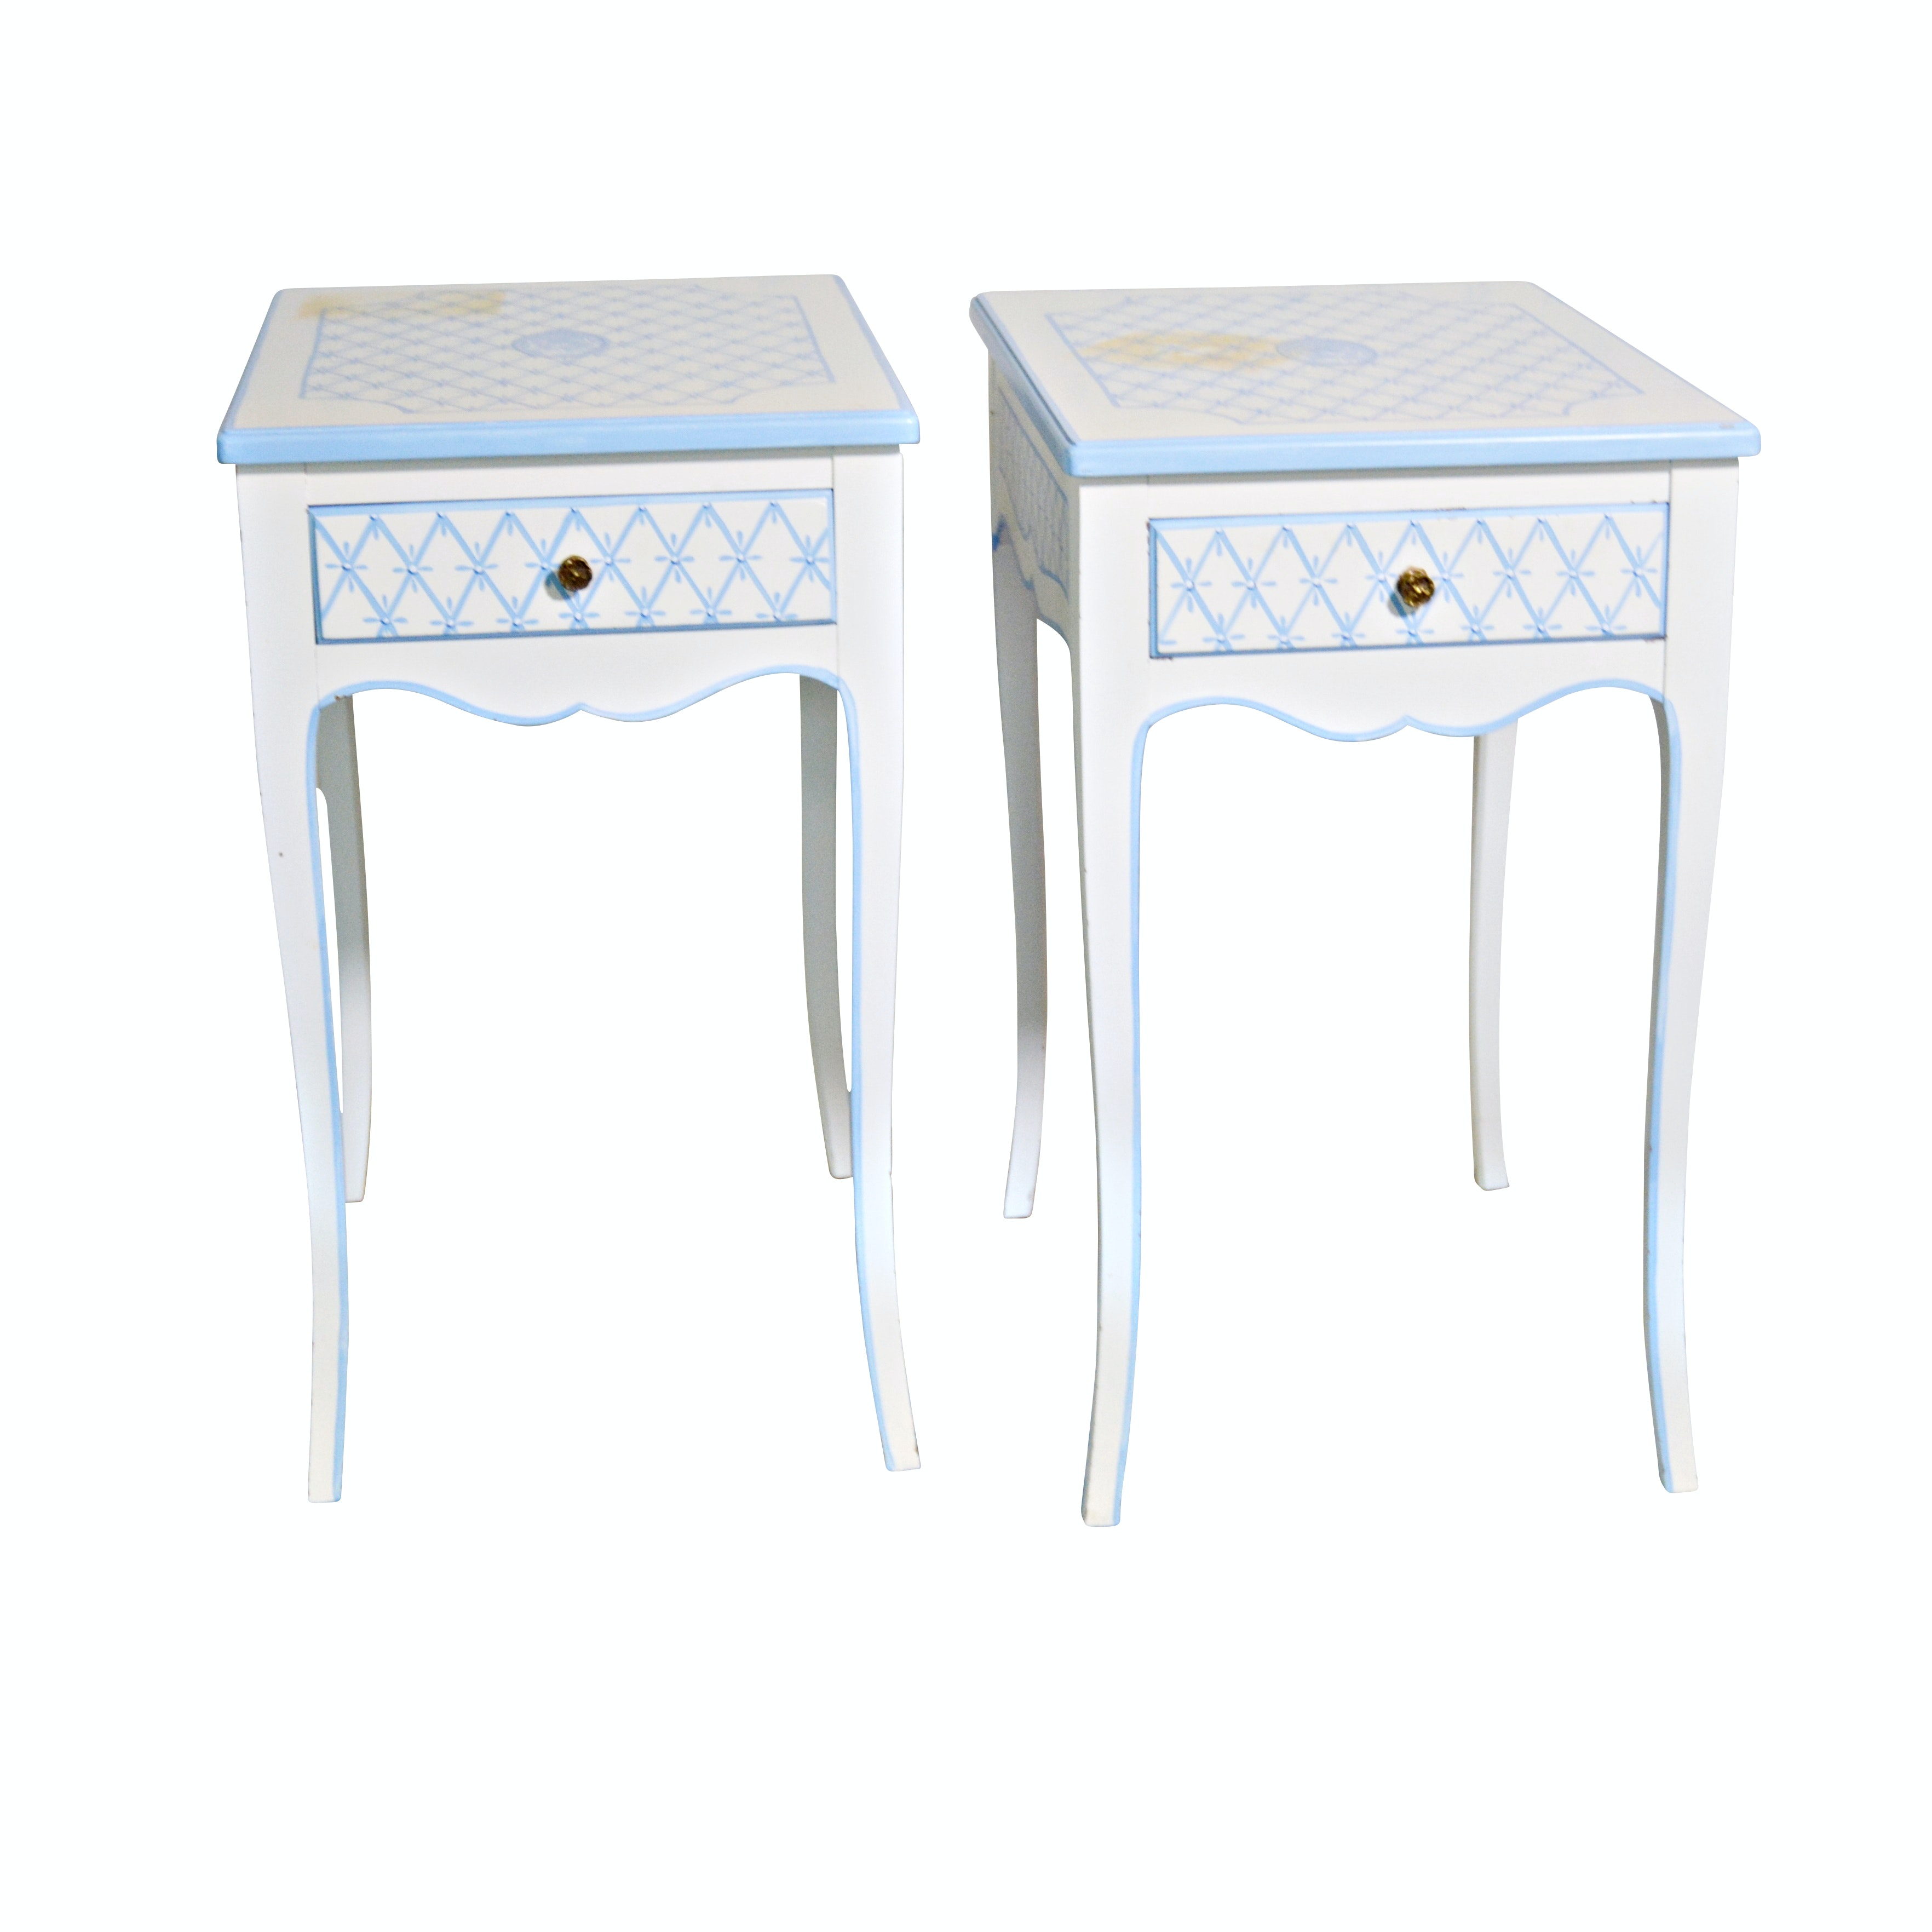 Lattice Painted Wood End Tables, Pair, Late 20th Century